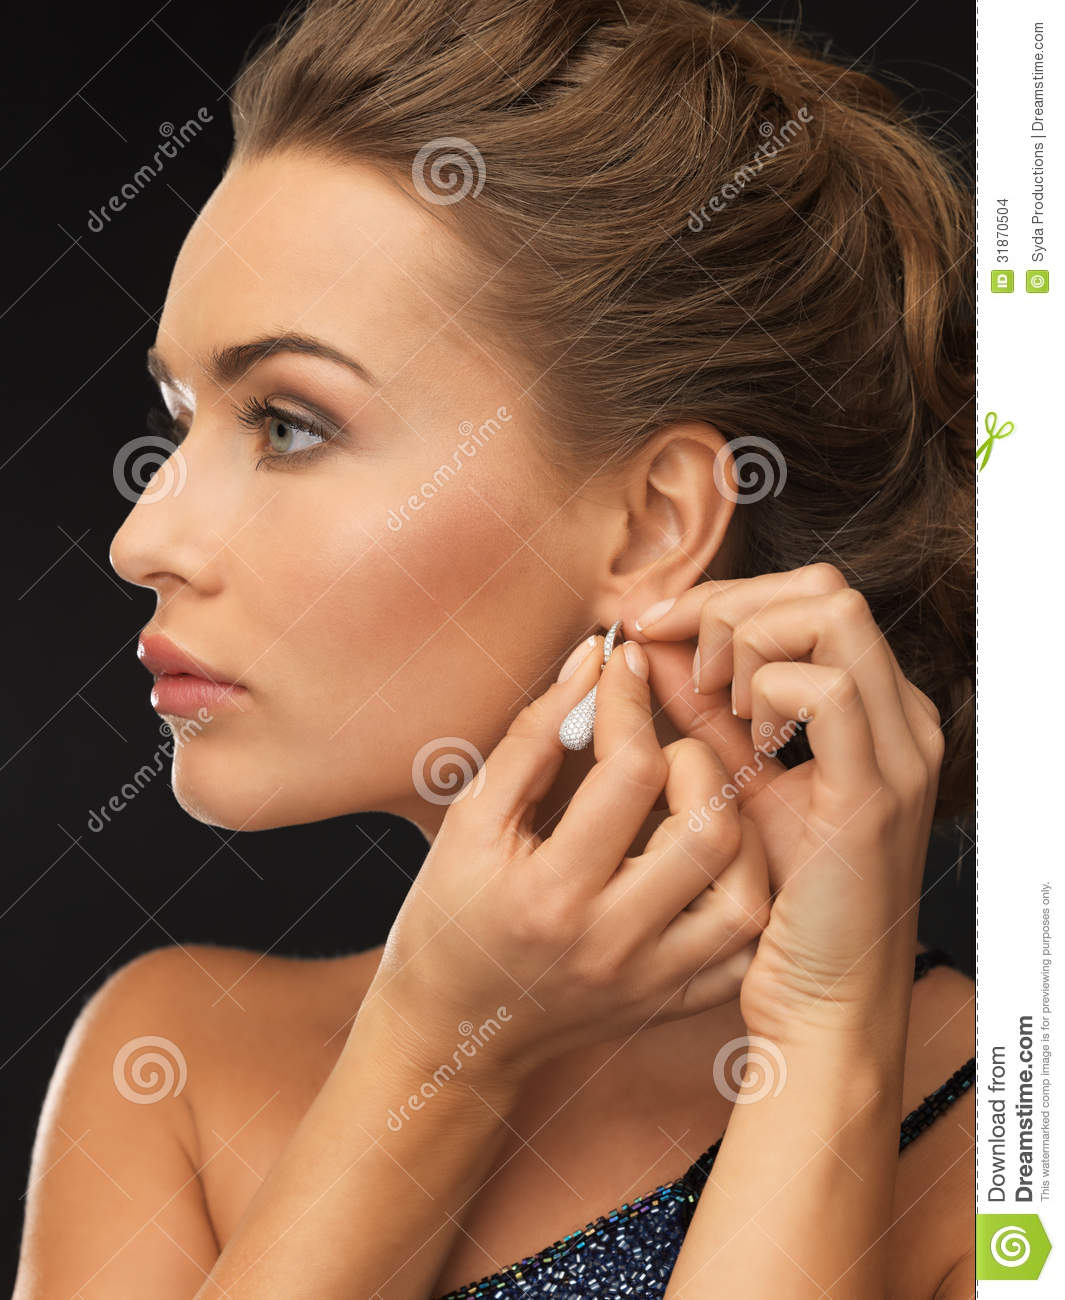 Popular Woman Wearing Shiny Diamond Earrings Stock Images  Image